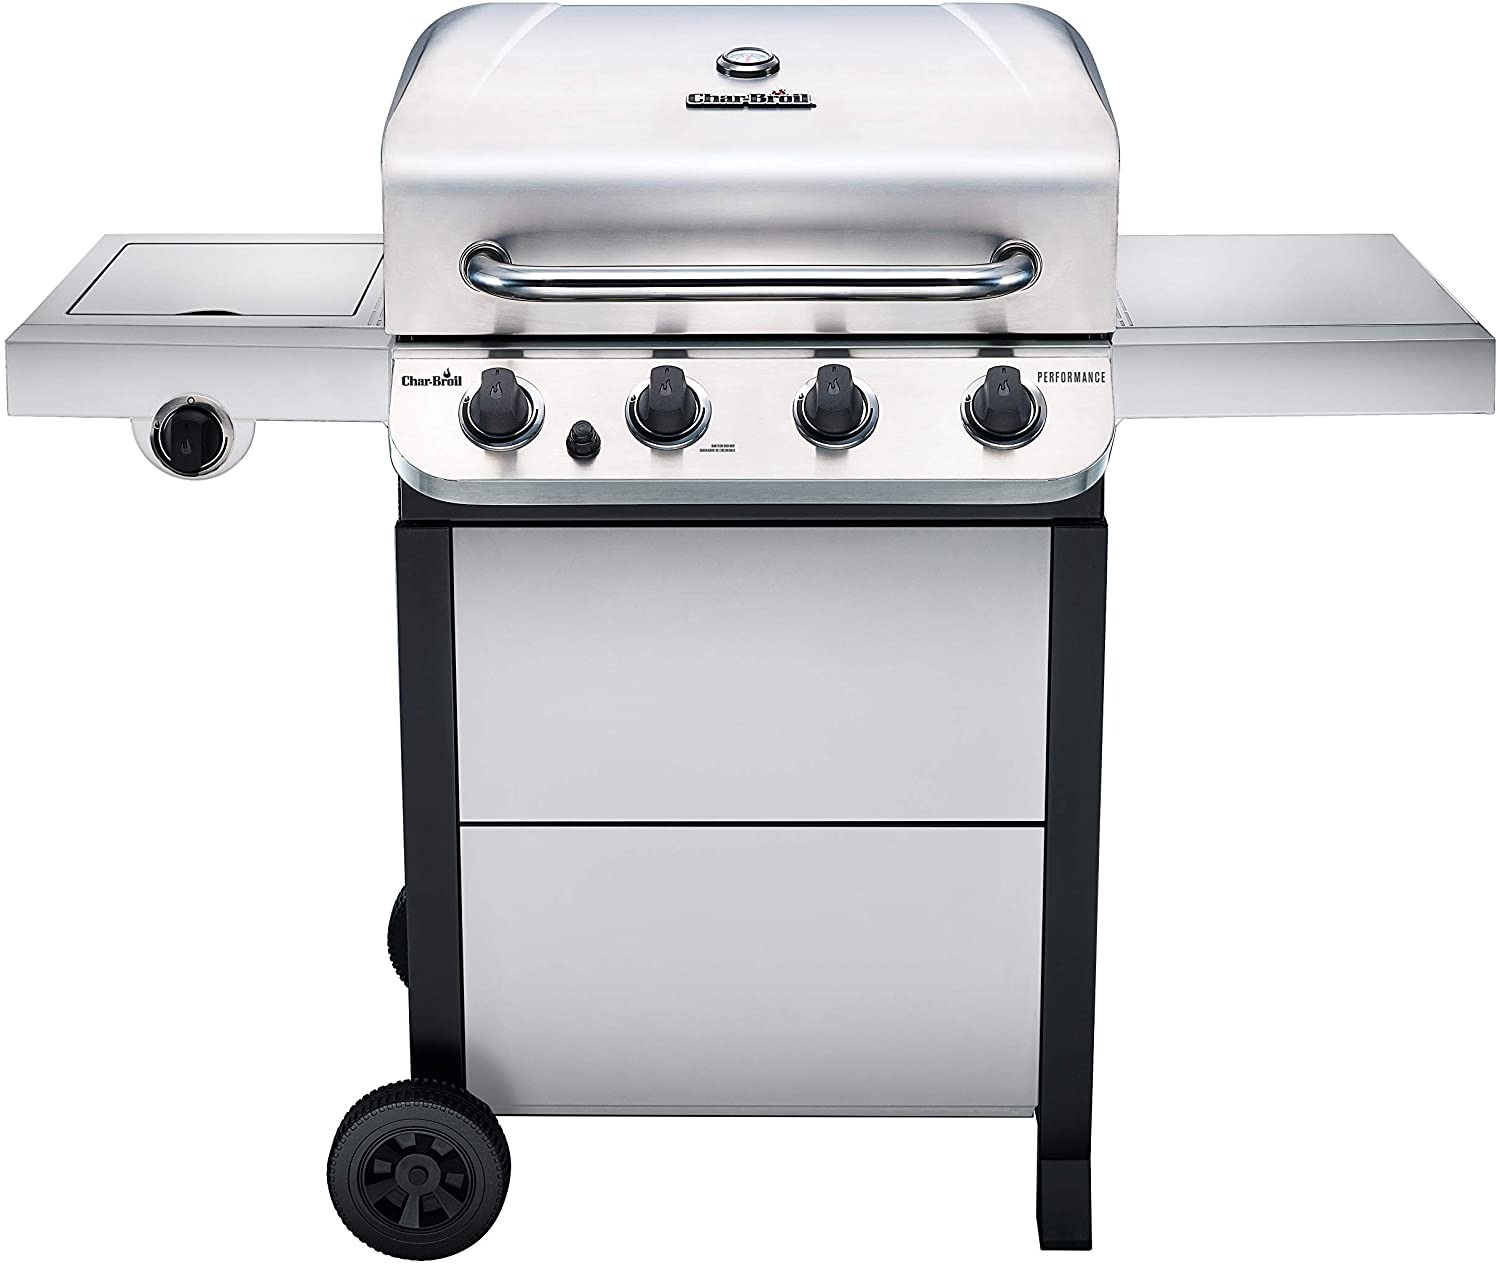 char-broil-463377319-performance-4-burner-cart-style-liquid-propane-gas-grill